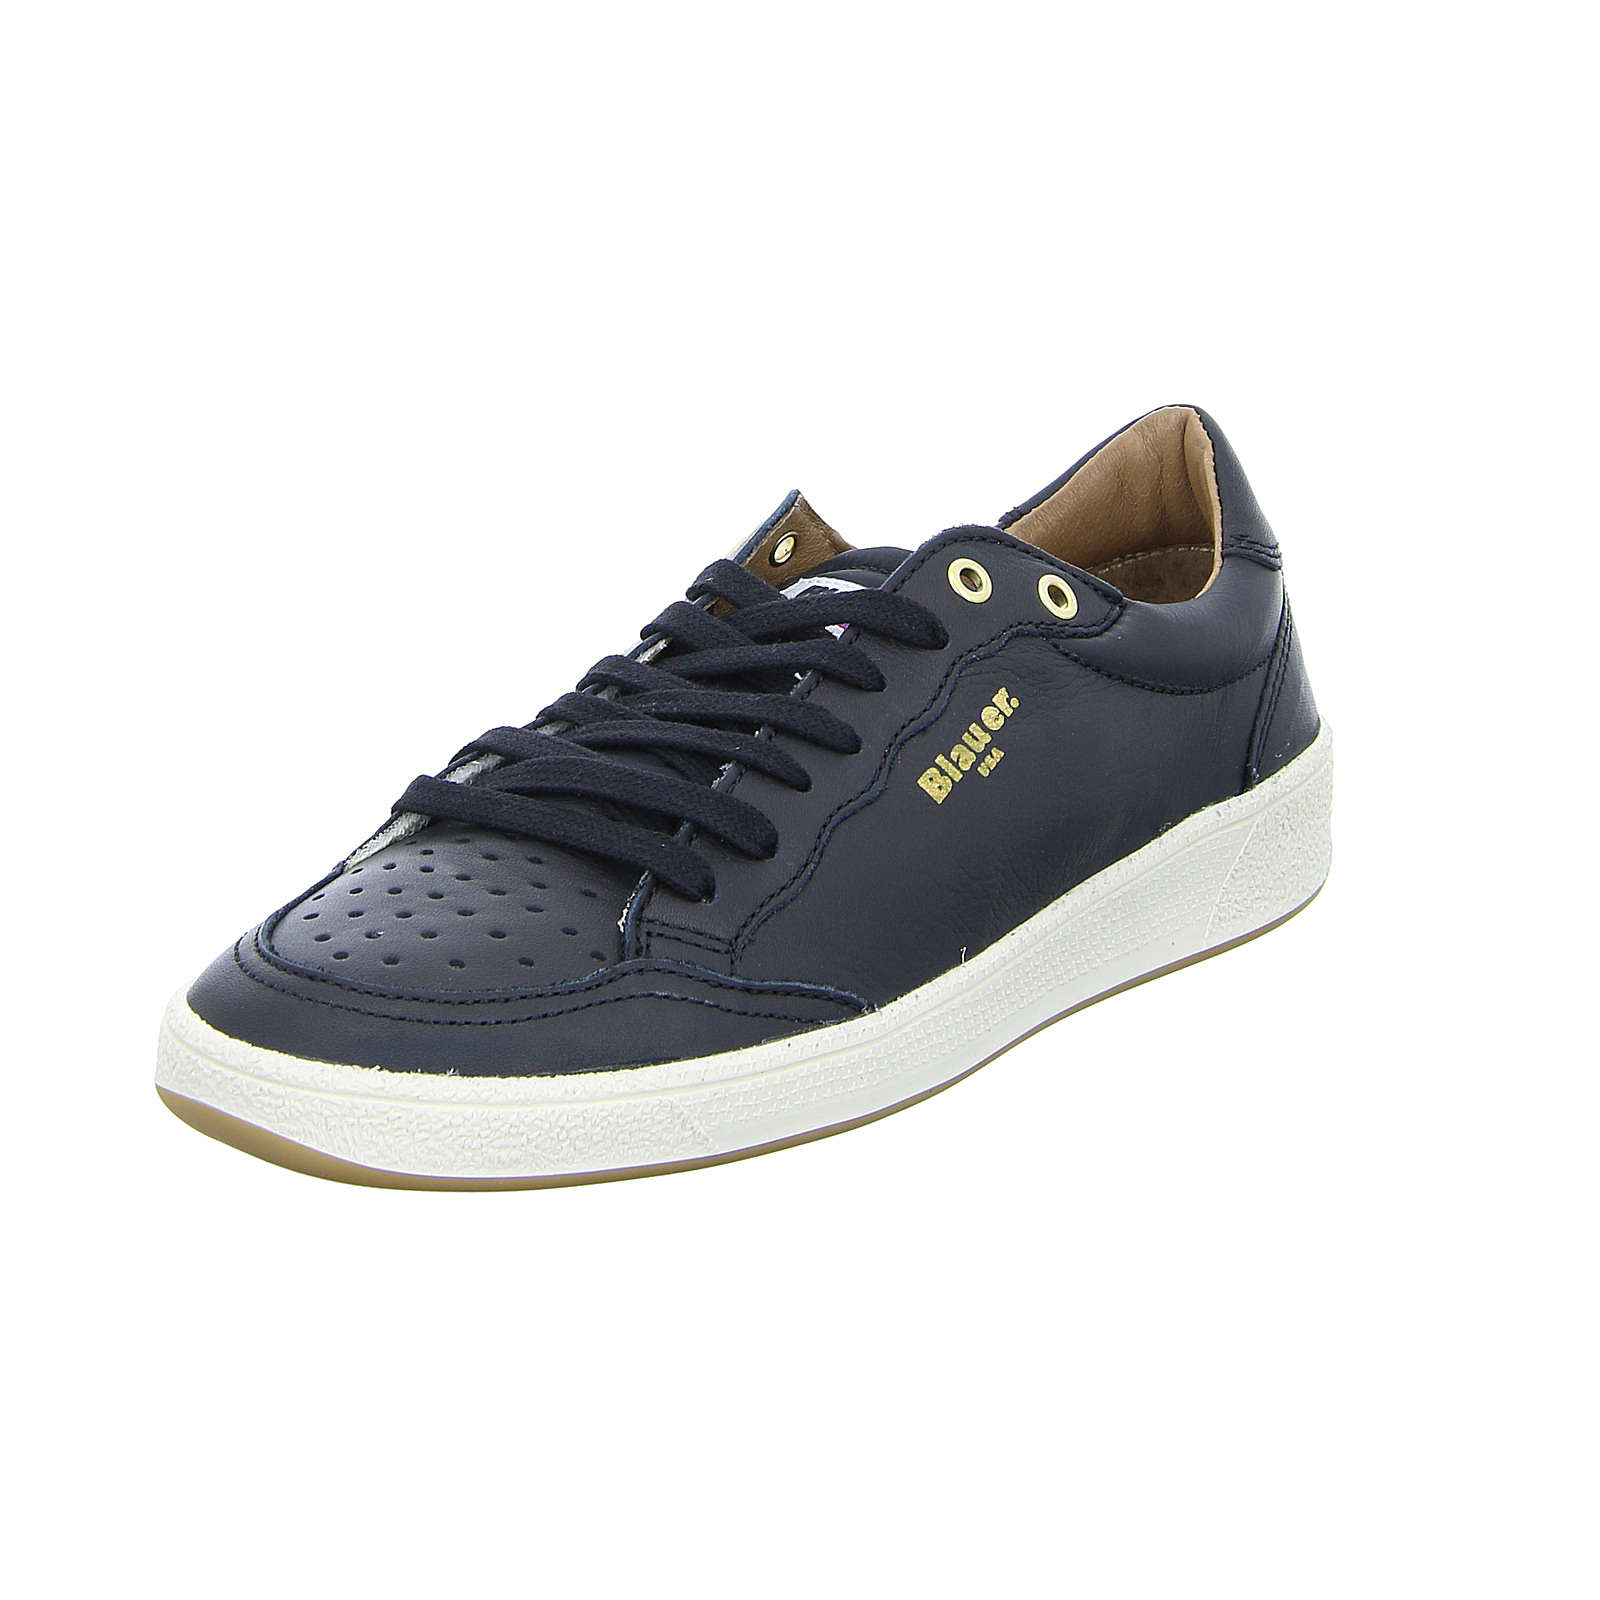 Blauer MURRAY01/LEA Sneakers Low schwarz Herren Gr. 42